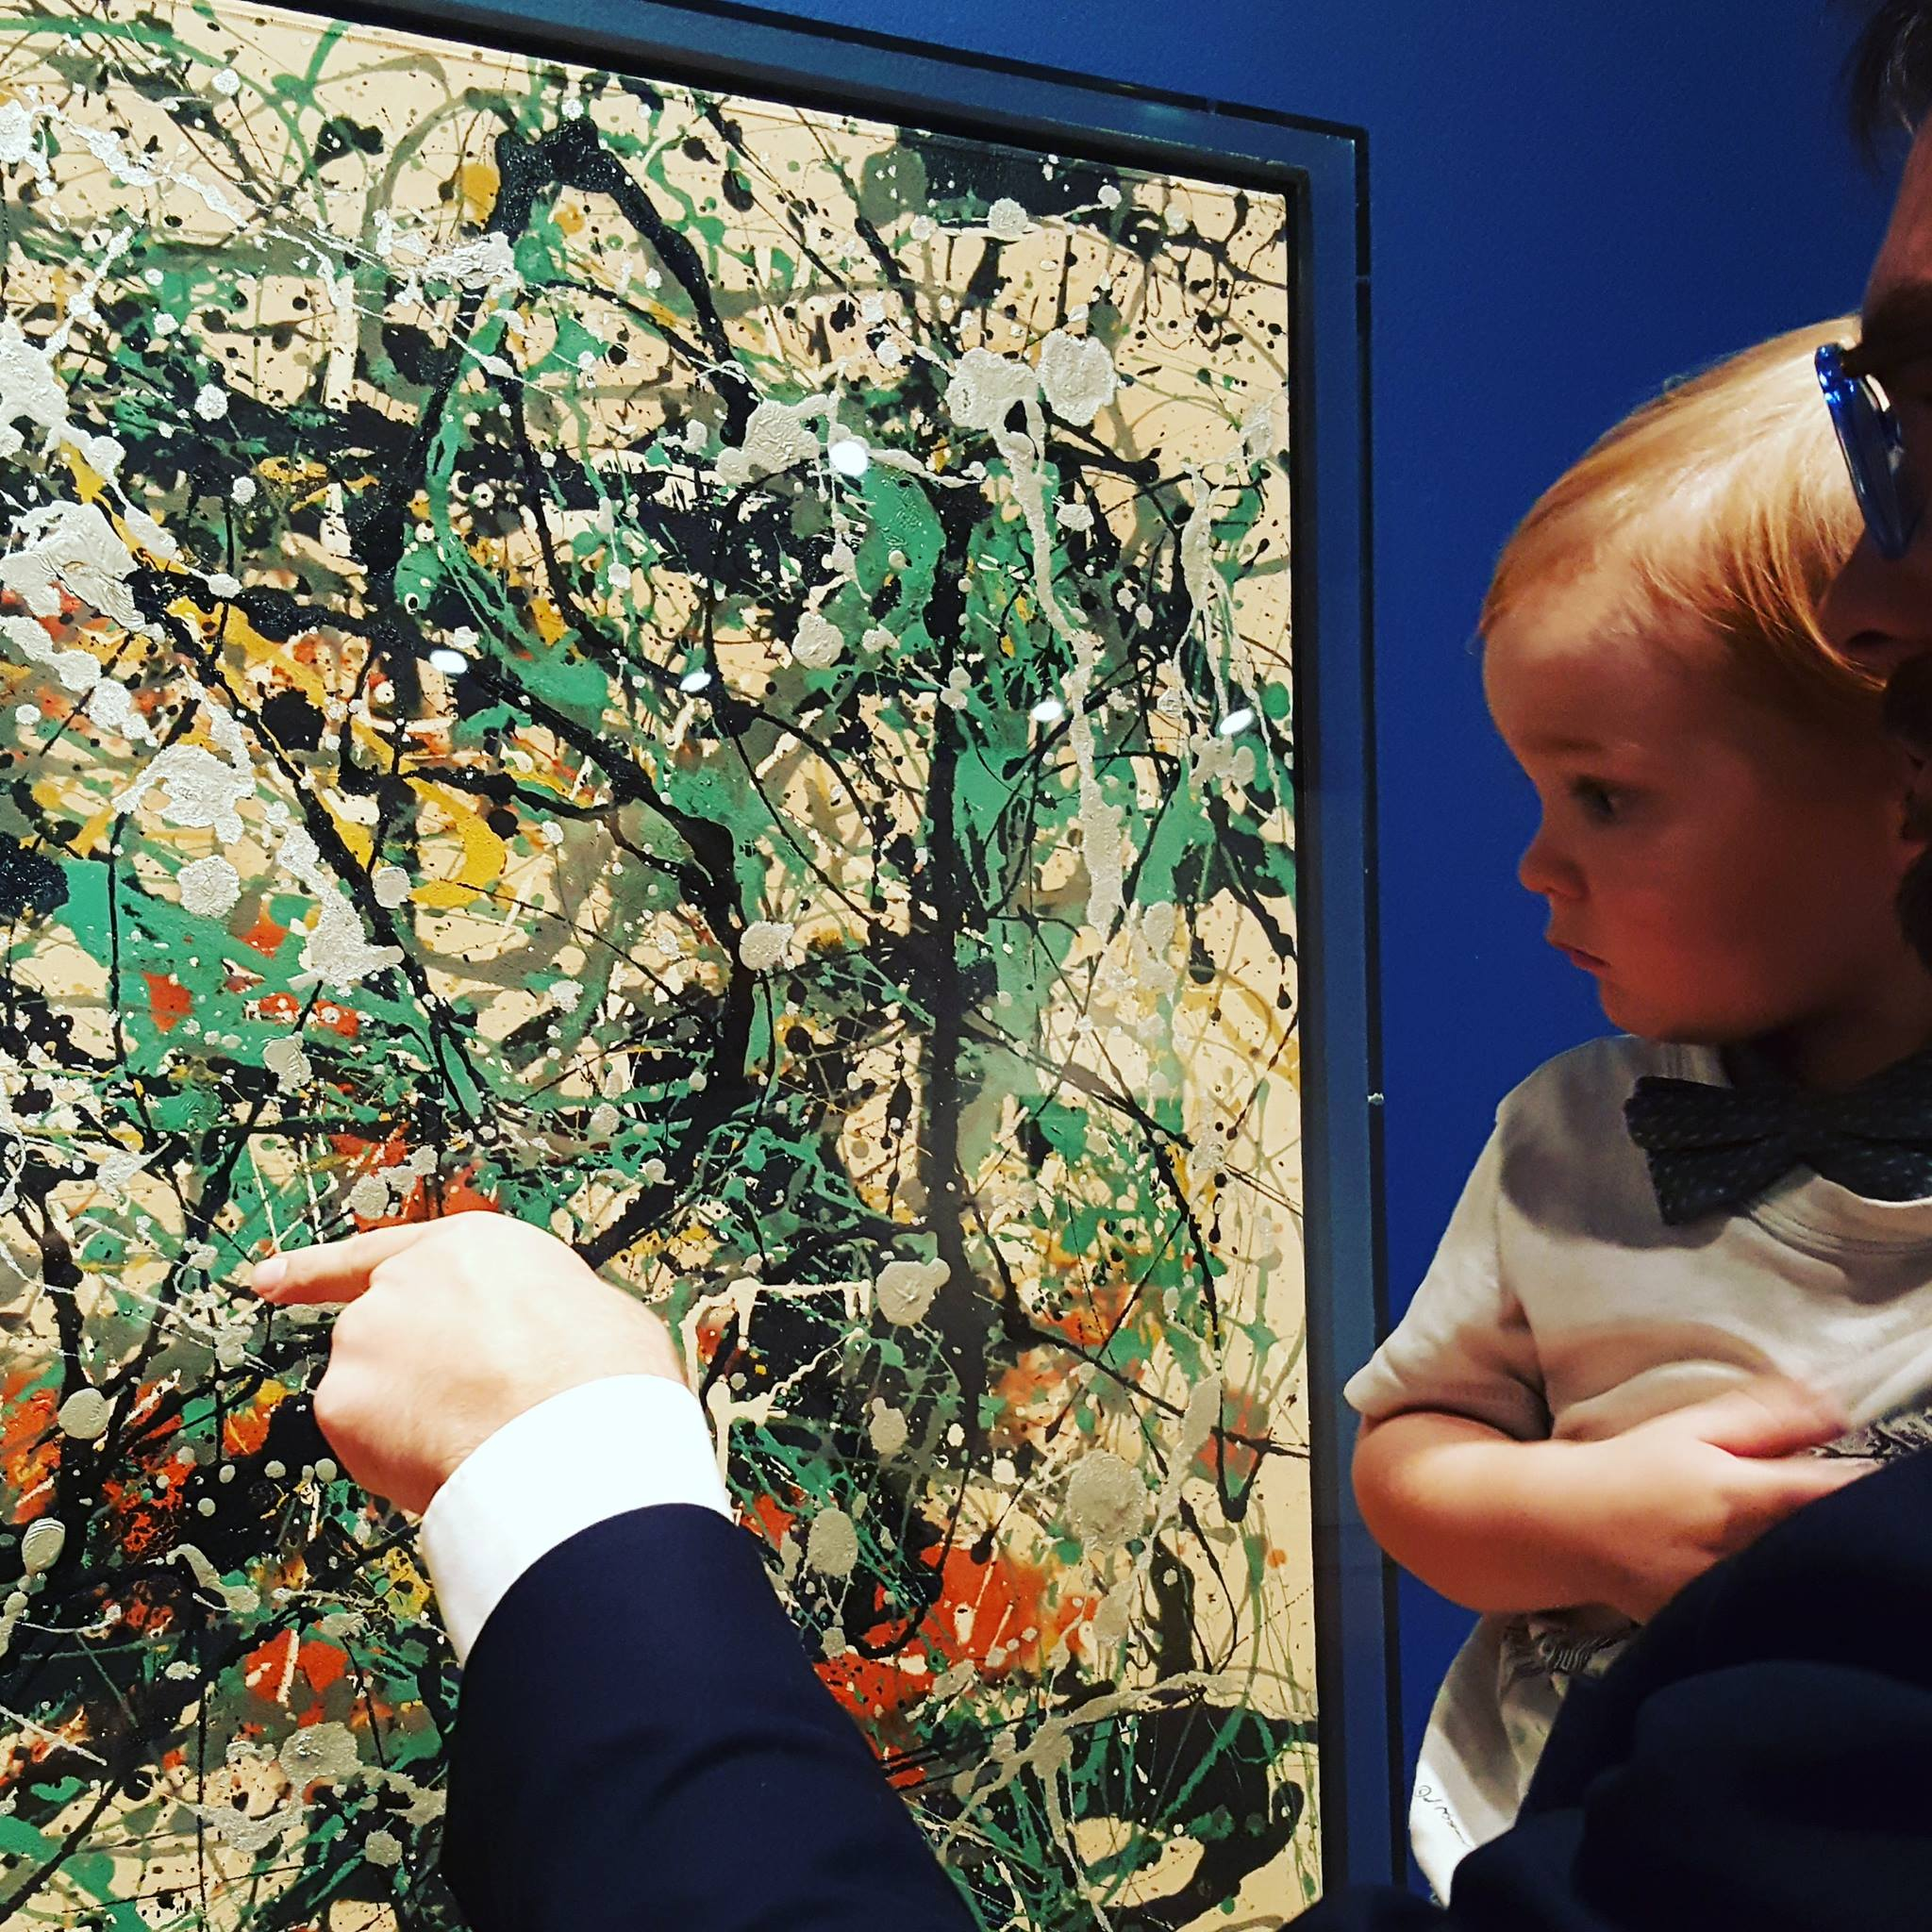 Is My Child Too Young for an Art Museum?